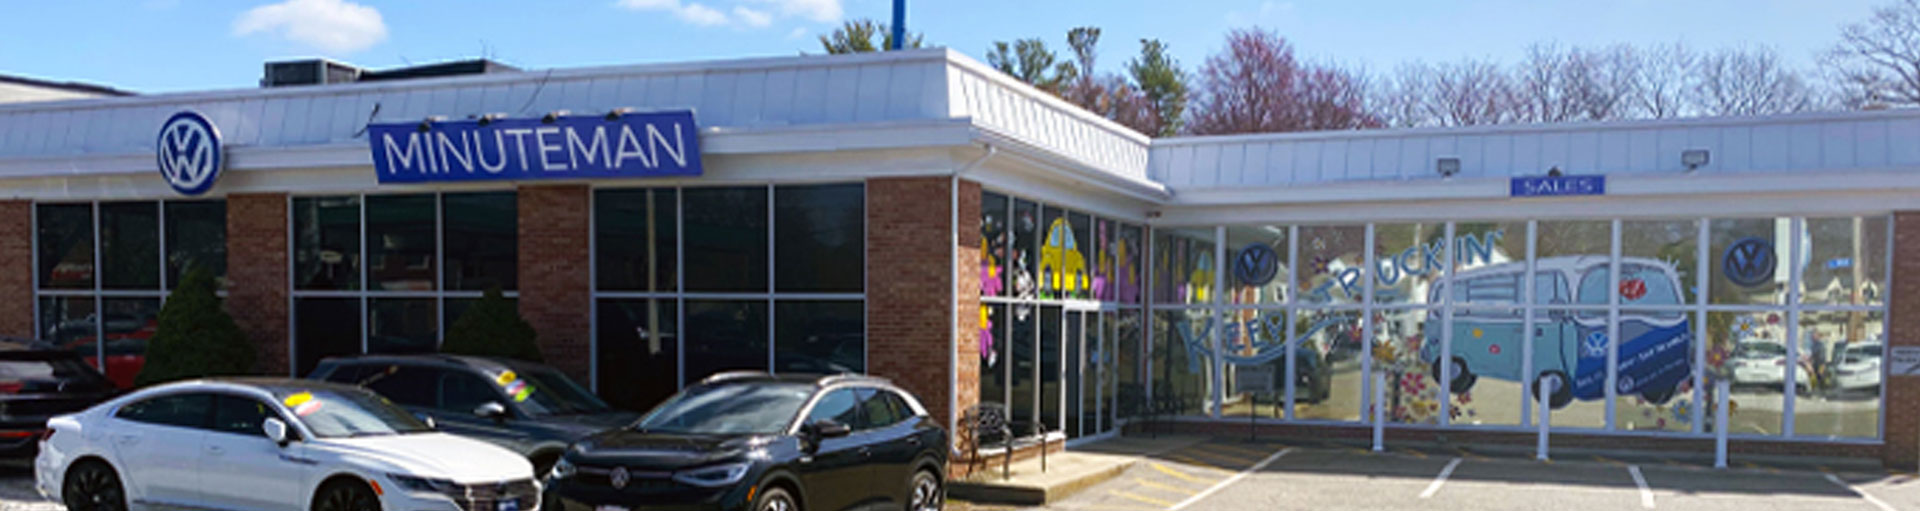 Minuteman Volkswagen Multi-Point Inspection Service